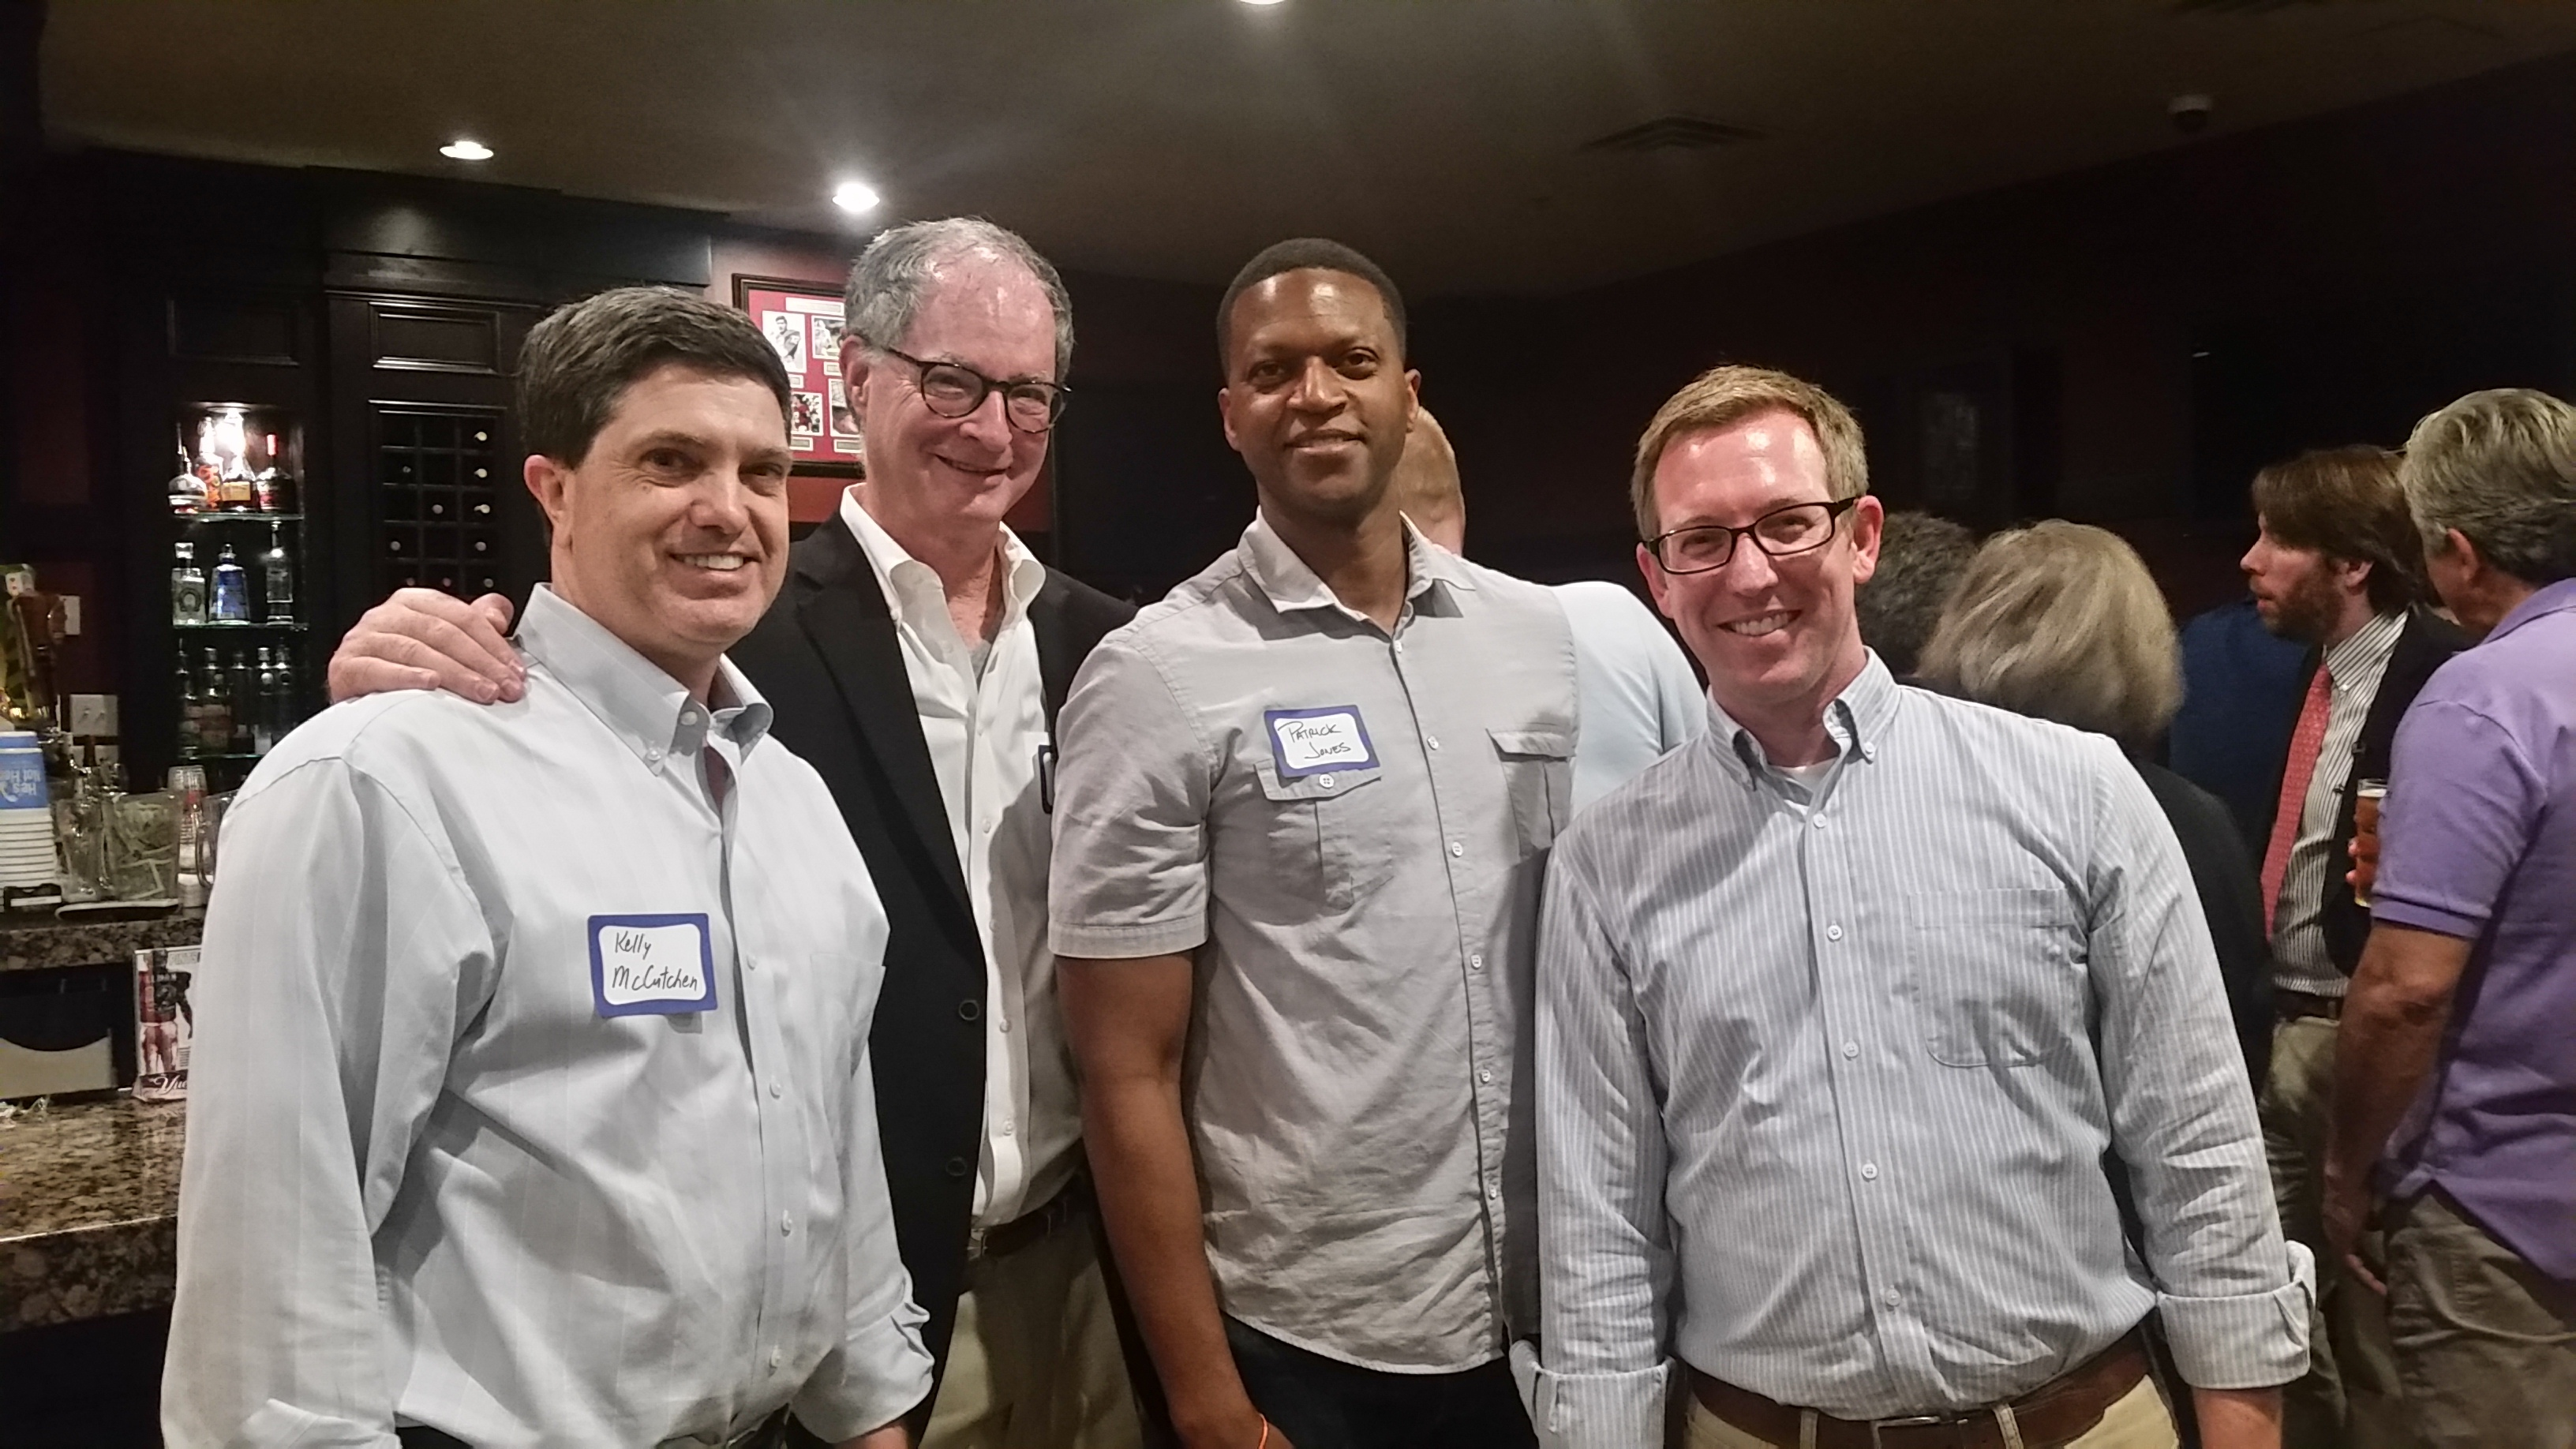 The Georgia Public Policy Foundation was out in force at America's Future Foundation's Book Forum Tuesday night in Atlanta. With From left, Kelly McCutchen, XXXX, Patrick Jones and Eric Wearne